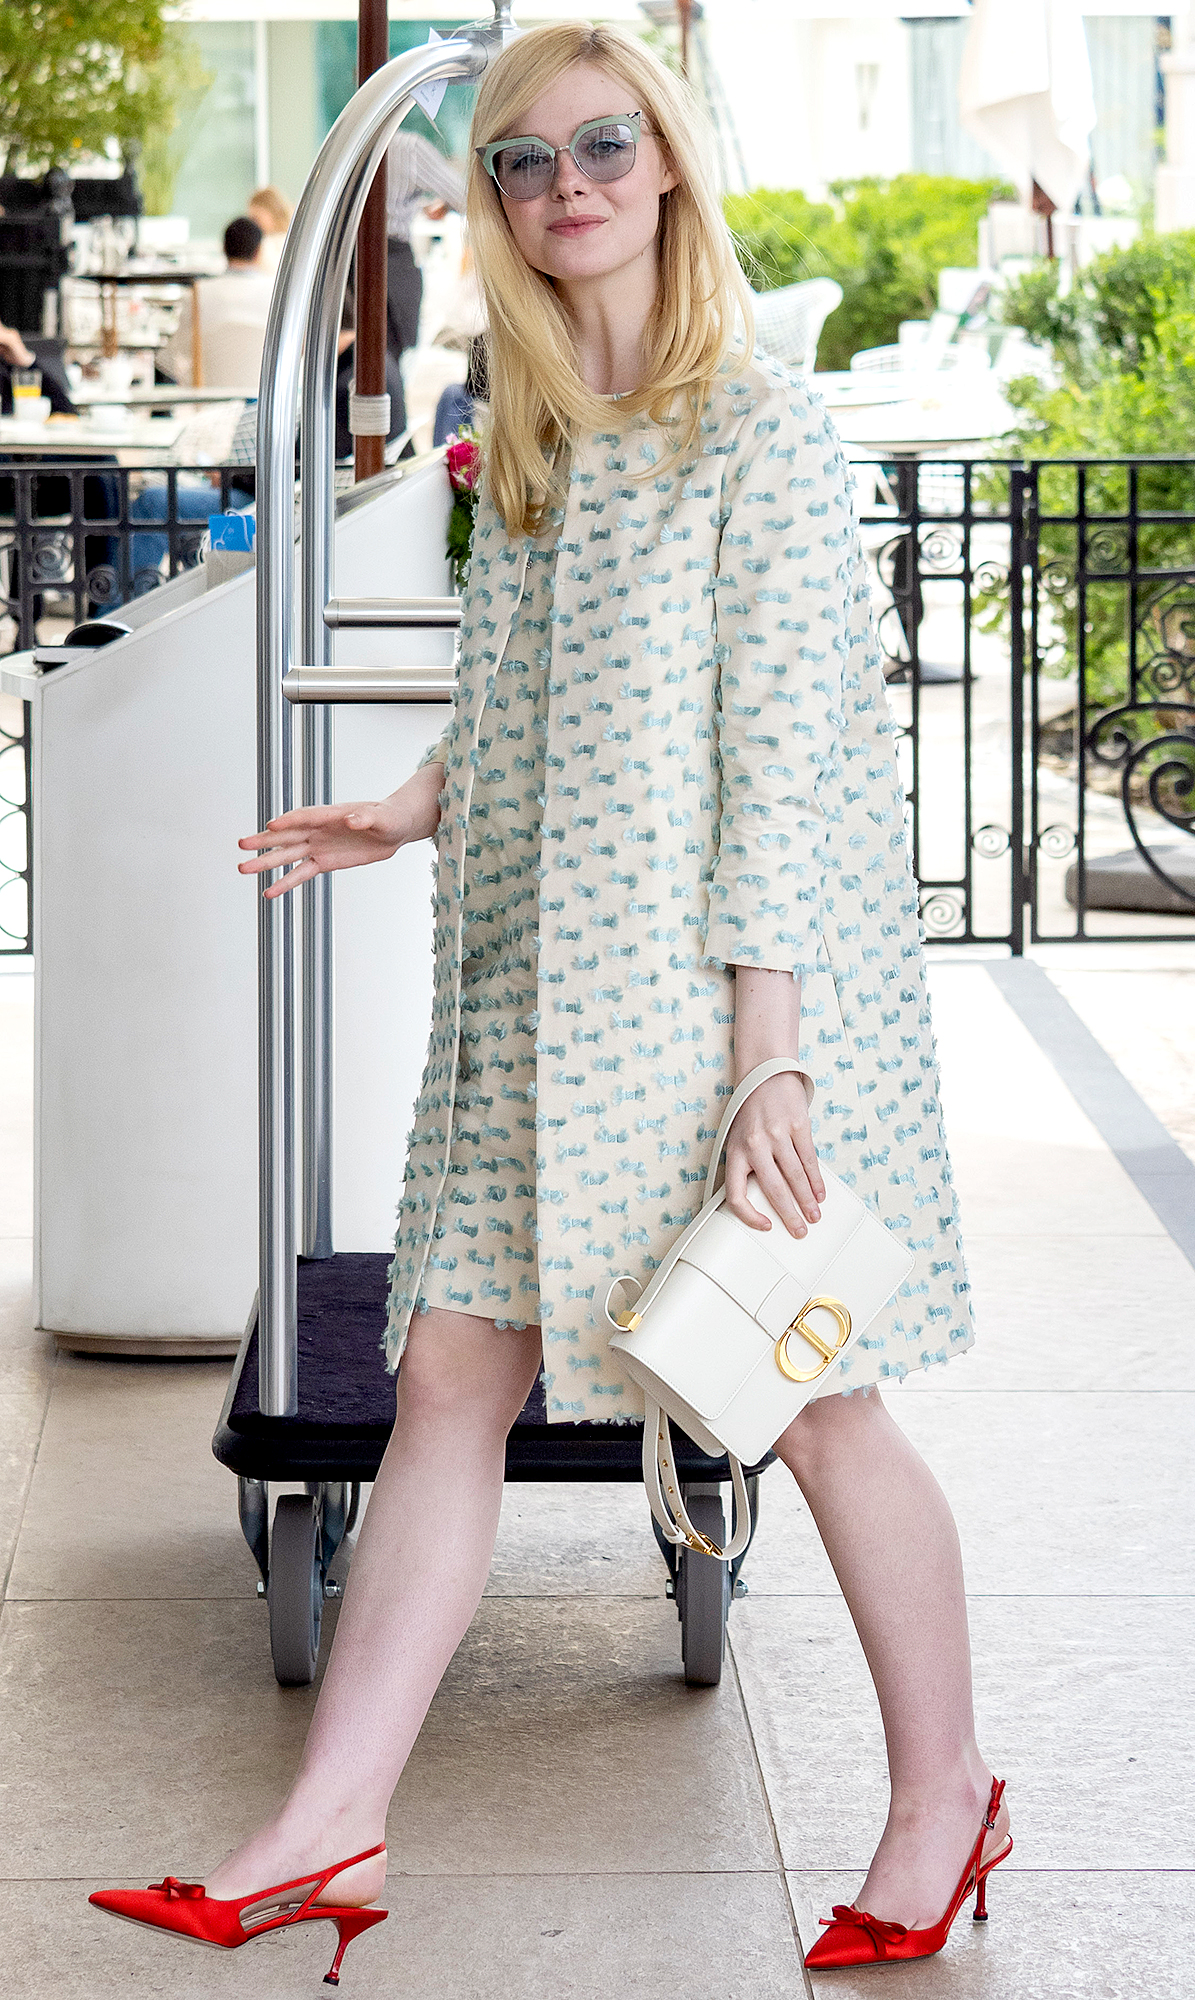 Elle-Fanning - It was all about the retro vibes for the blonde beauty in head-to-toe Dior.